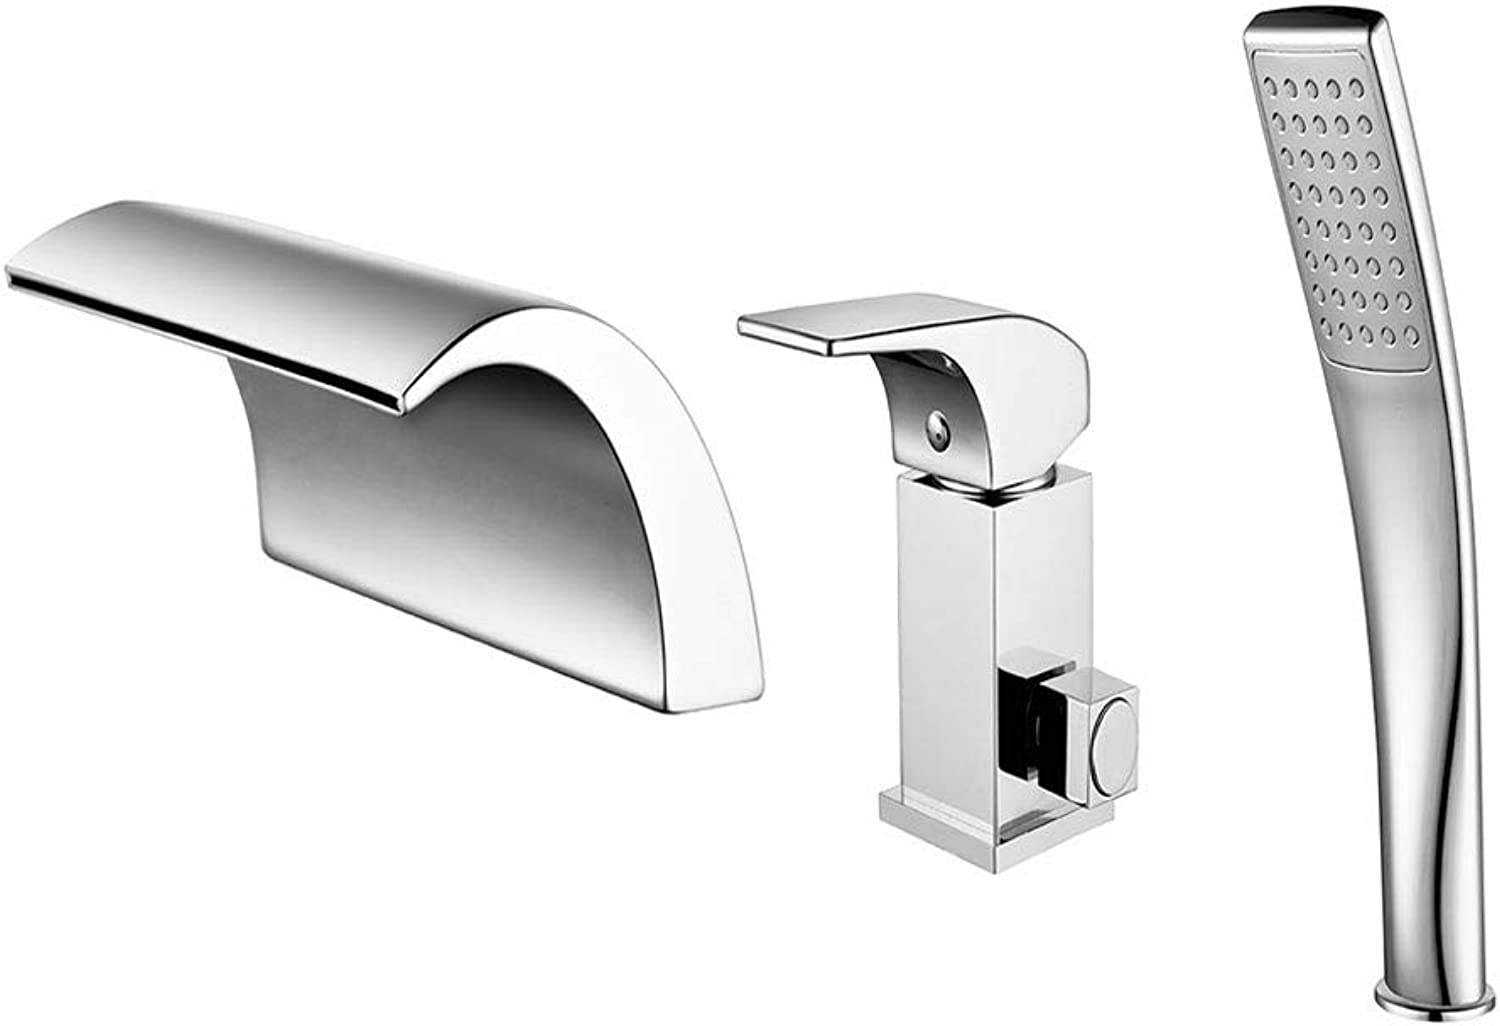 LXKY Faucet - all copper hot and cold waterfall faucet, bathtub faucet, bathroom hotel